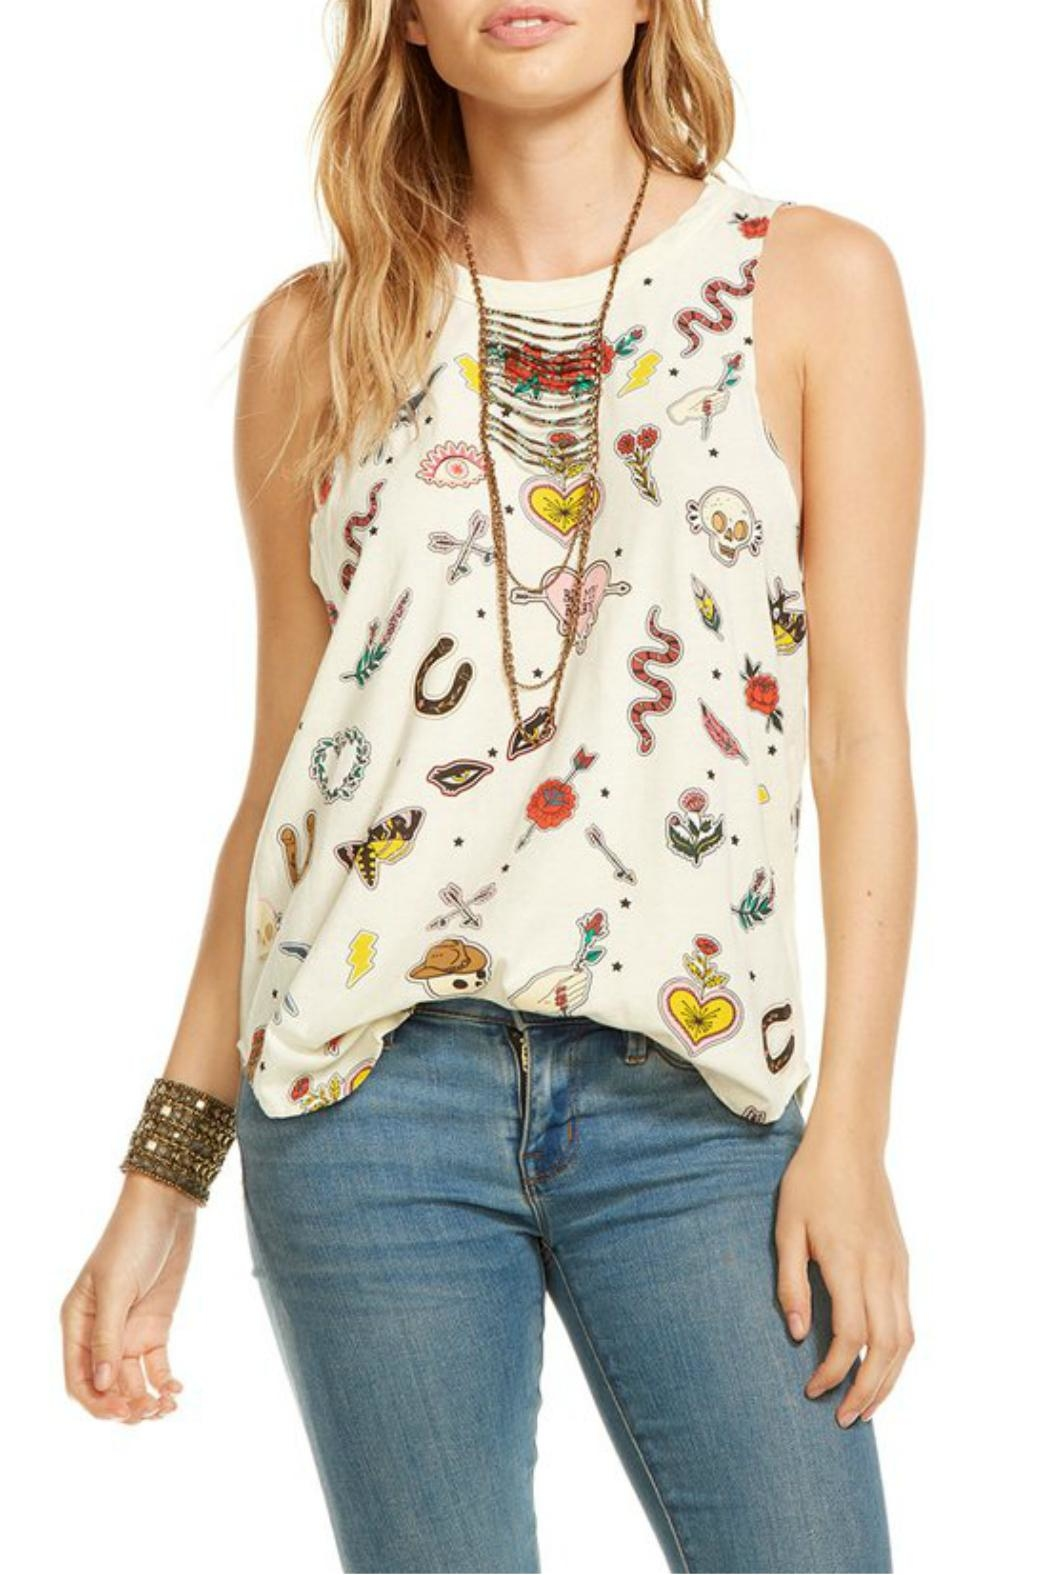 Chaser Graphic Patch Tank Top - Main Image